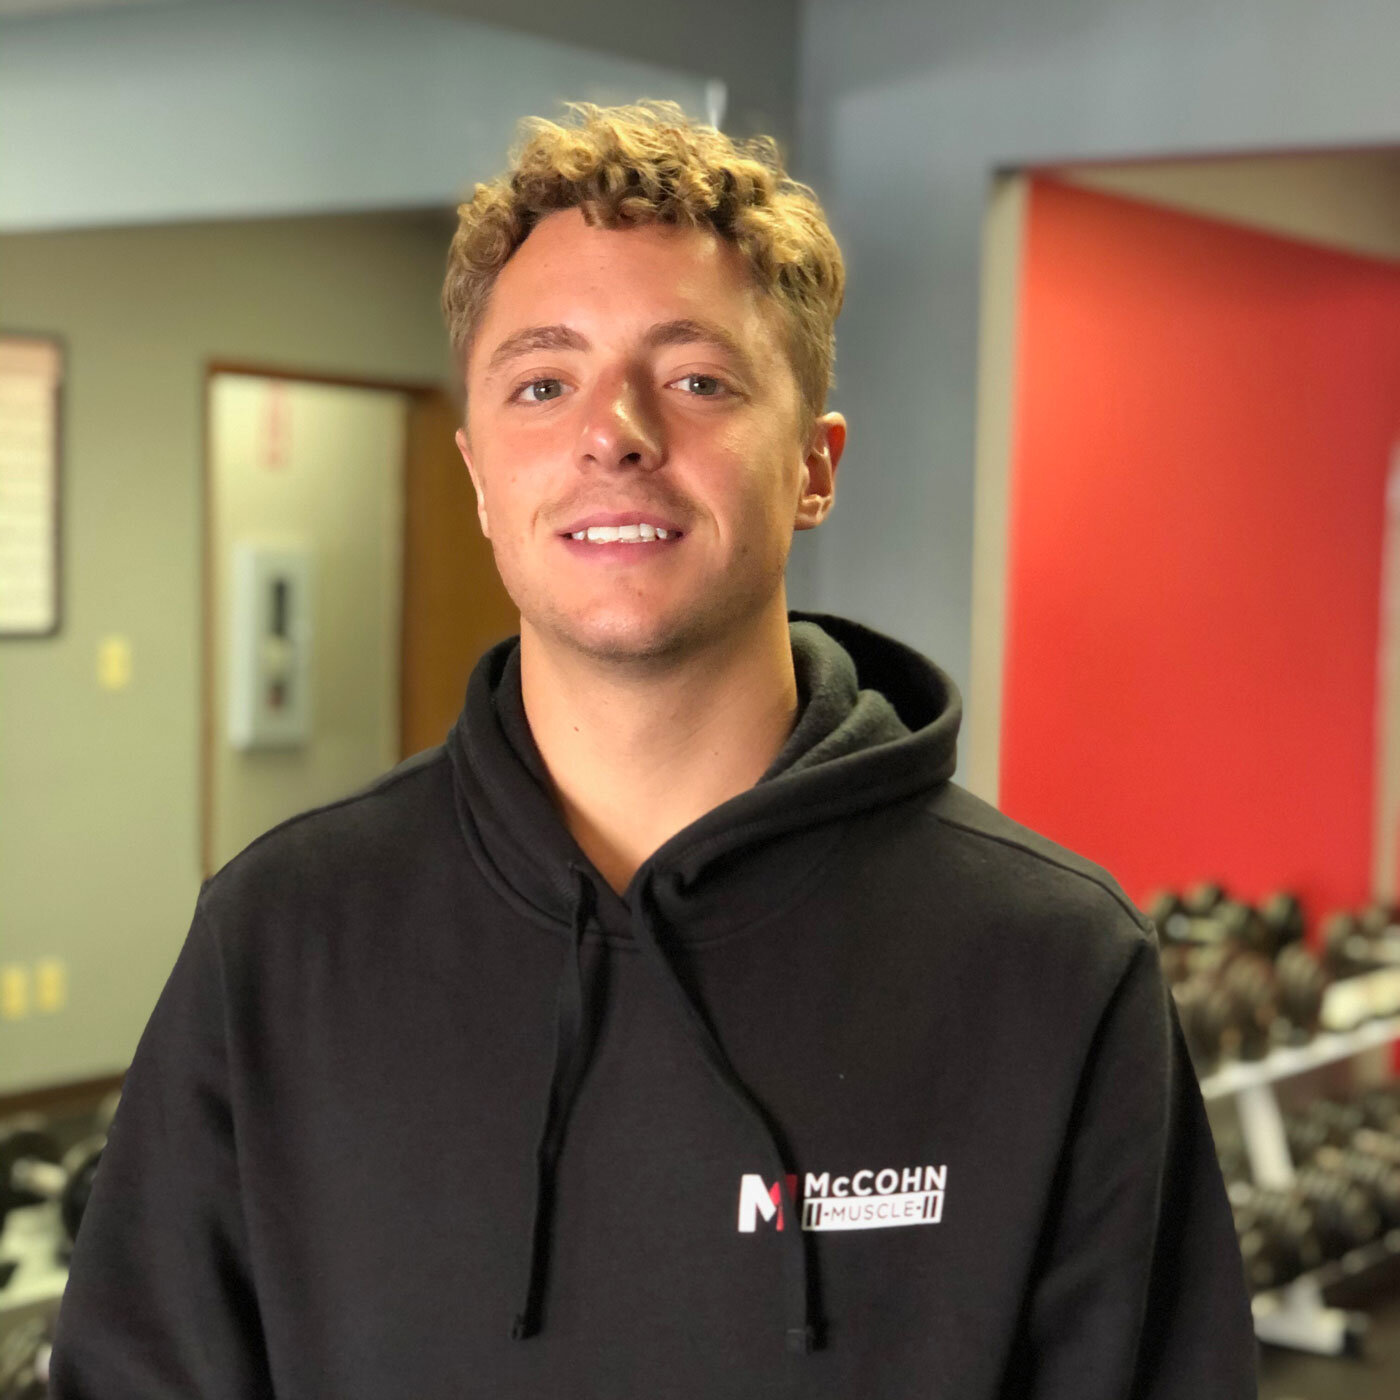 Matt Waters is a personal trainer at McCohn Muscle in Worthington, Ohio.